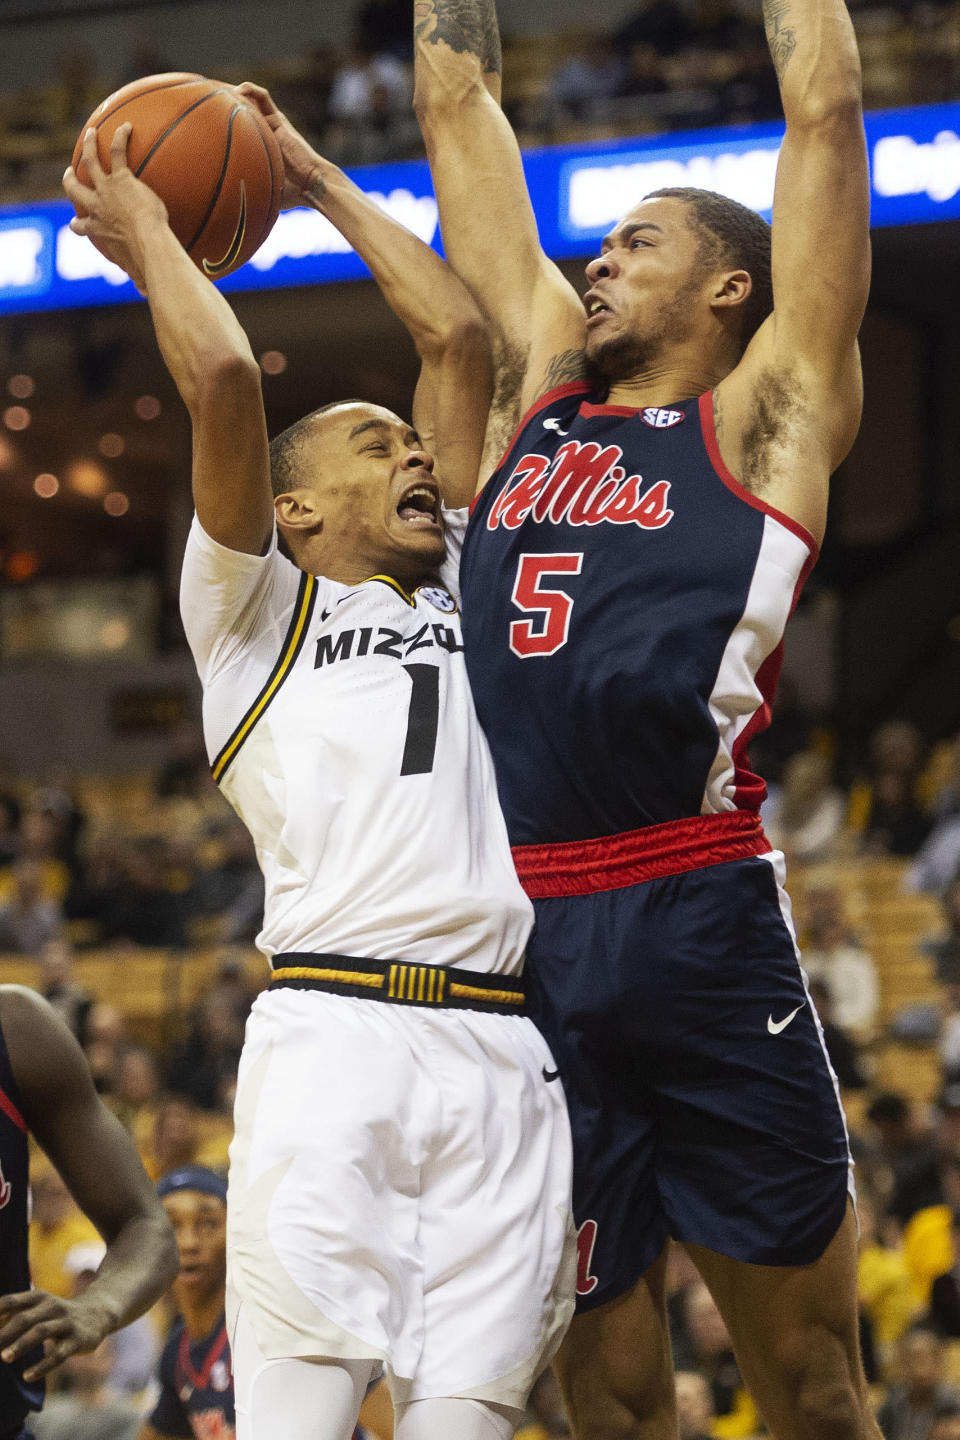 Missouri's Xavier Pinson, left, is fouled by Mississippi's KJ Buffen, right, as he shoots during the second half of an NCAA college basketball game Tuesday, Feb. 18, 2020, in Columbia, Mo. Missouri won 71-68.(AP Photo/L.G. Patterson)